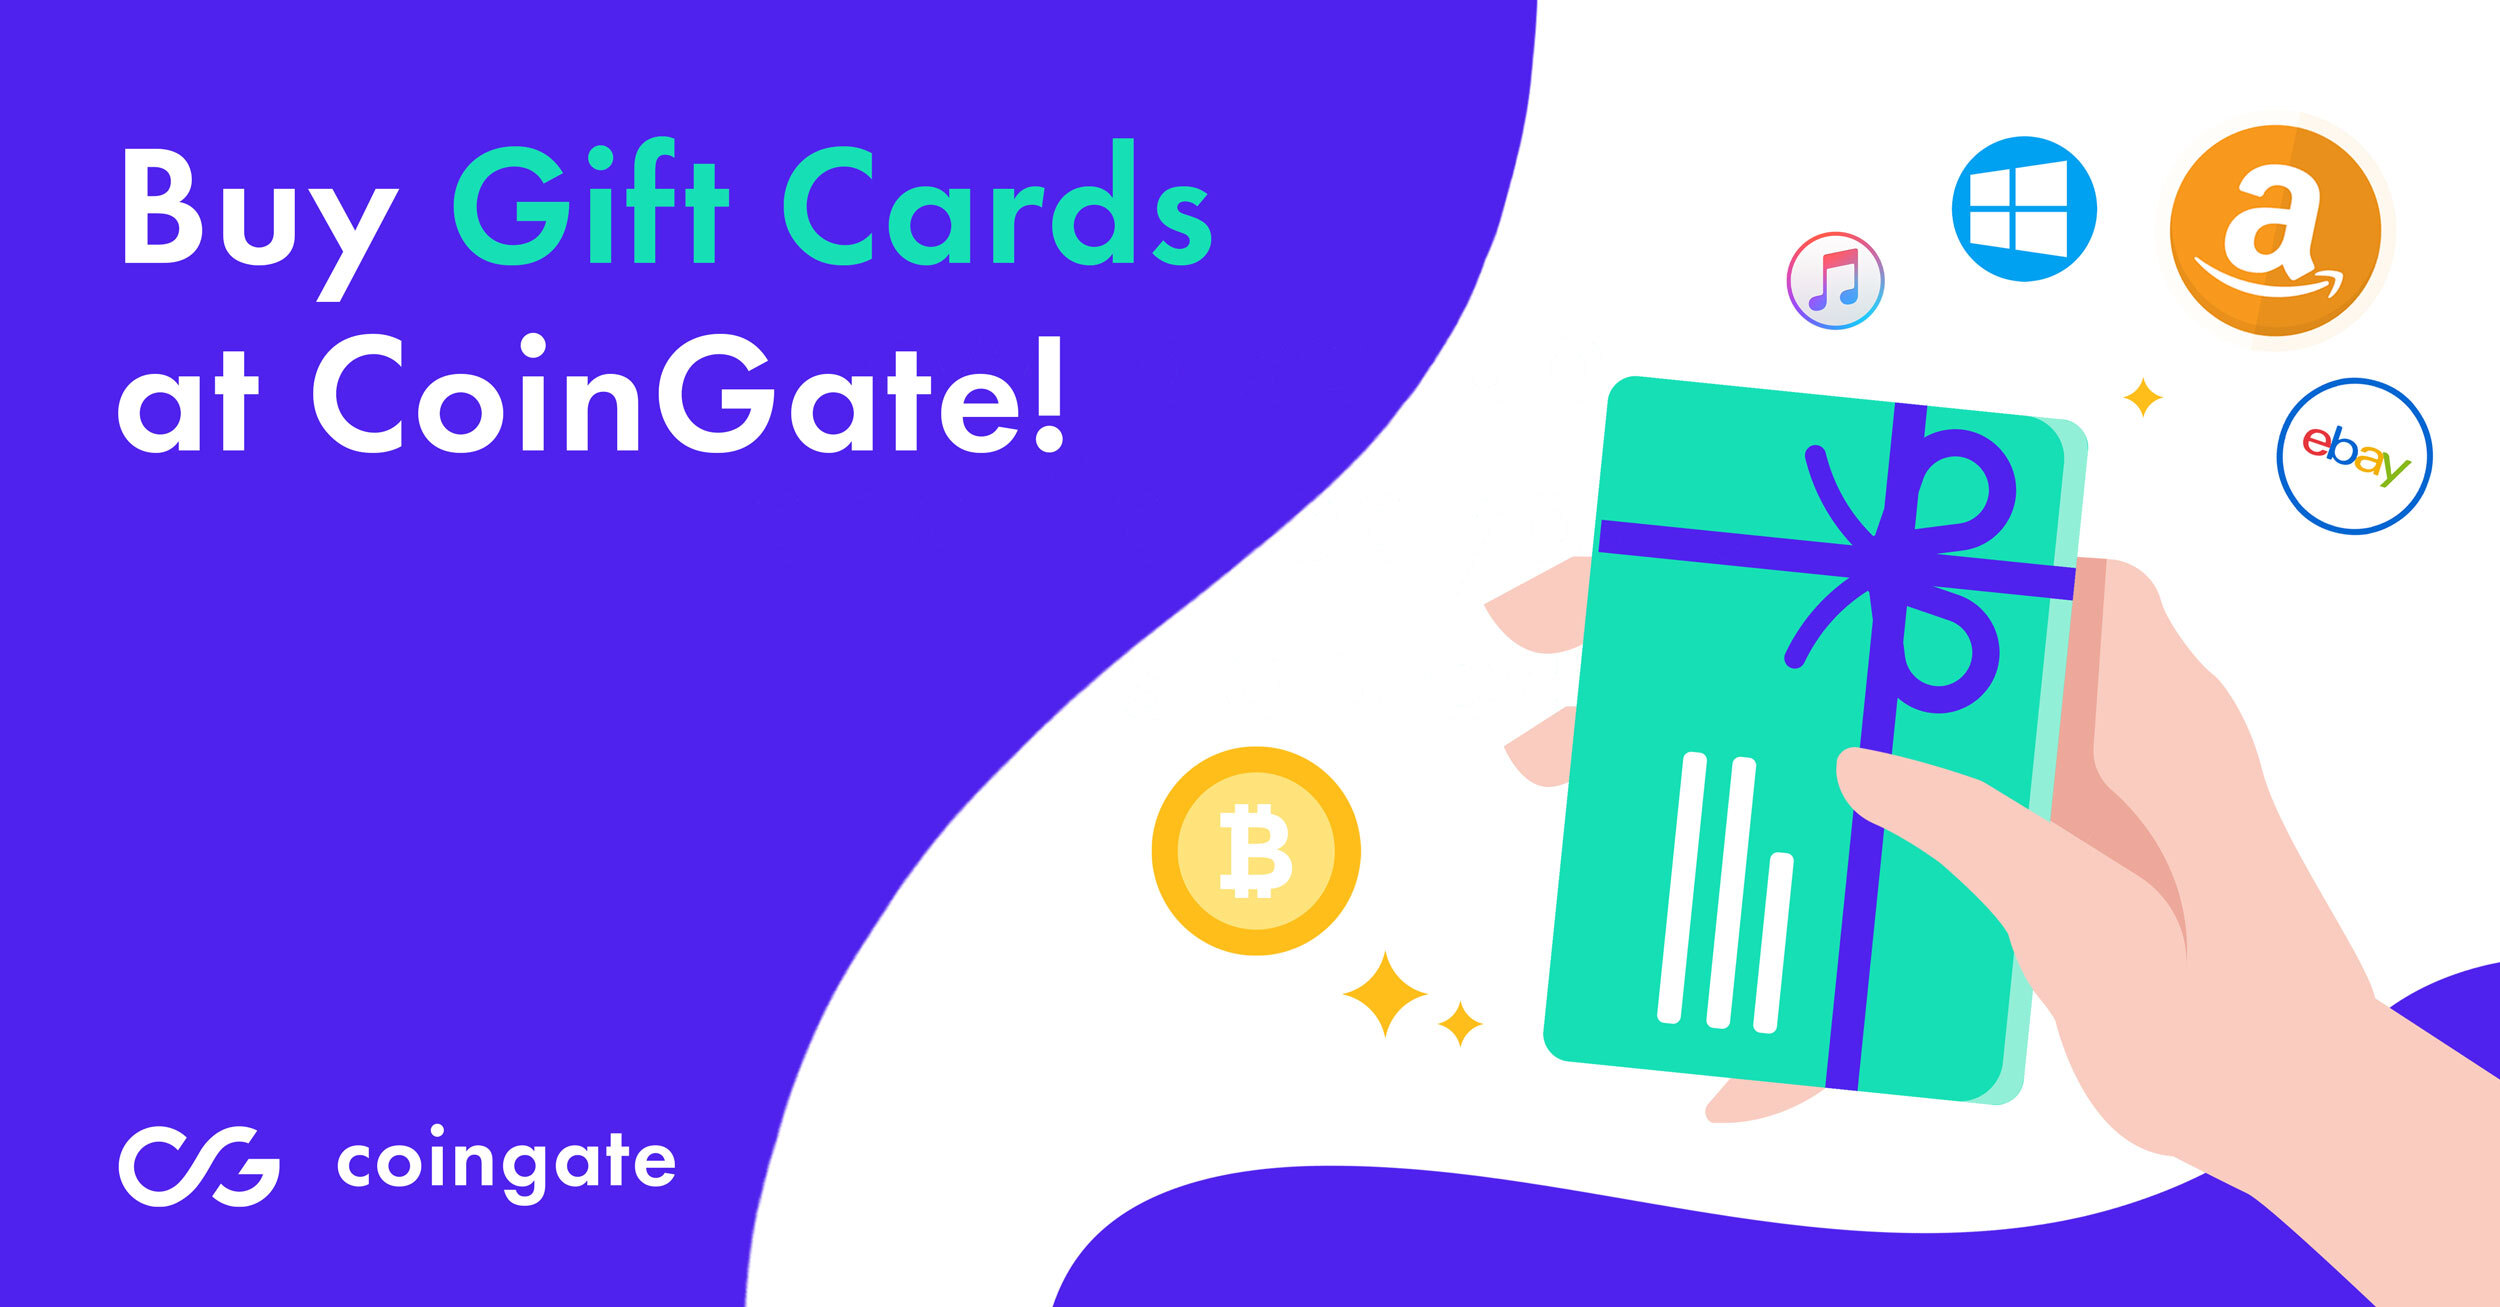 CoinGate gift cards